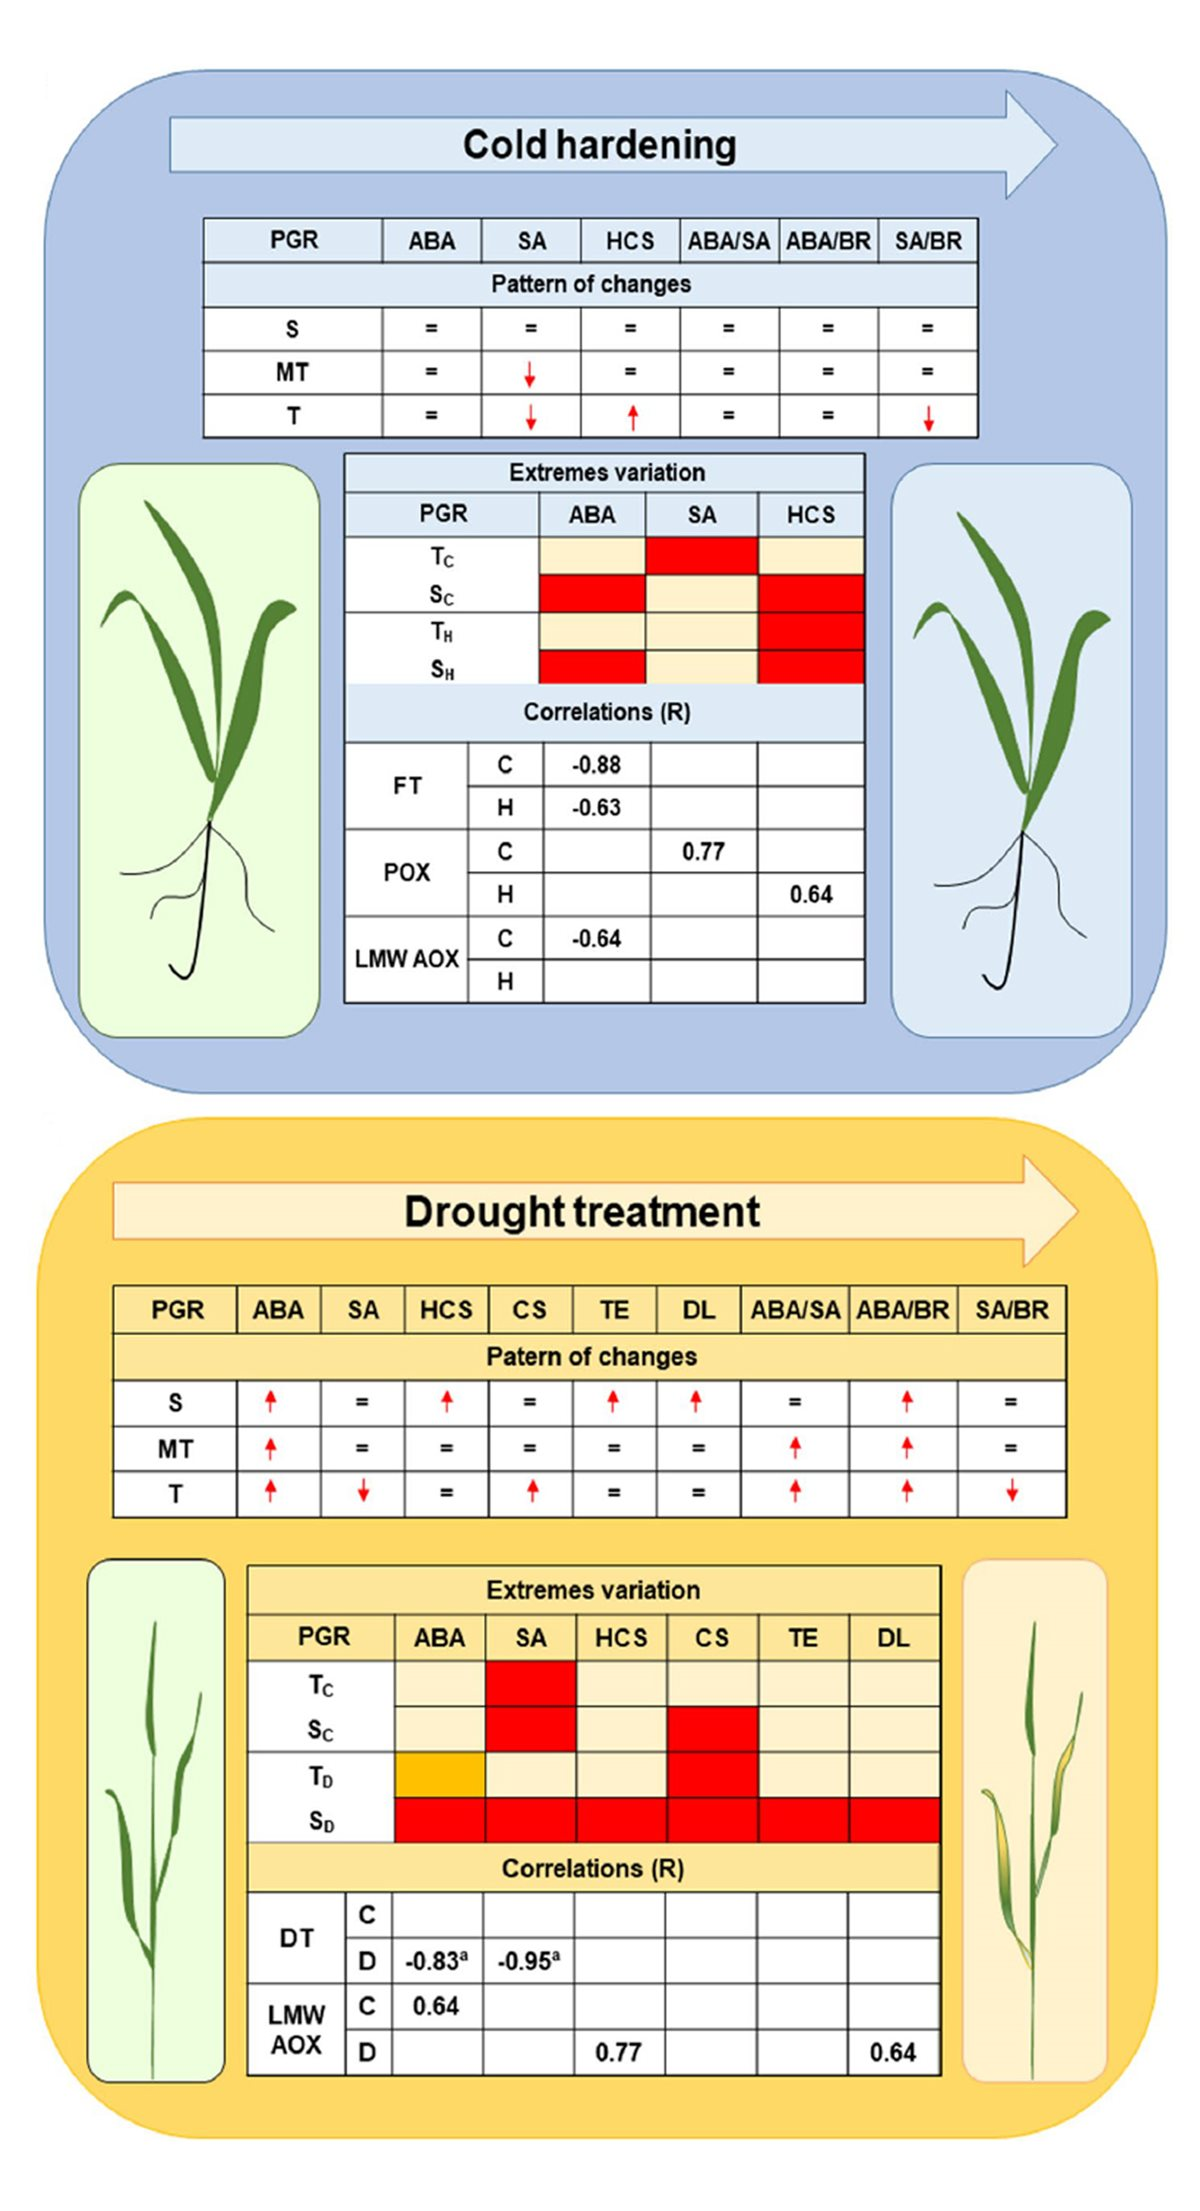 New publication: Involvement of homocastasterone, salicylic and abscisic acids in the regulation of drought and freezing tolerance in doubled haploid lines of winter barley